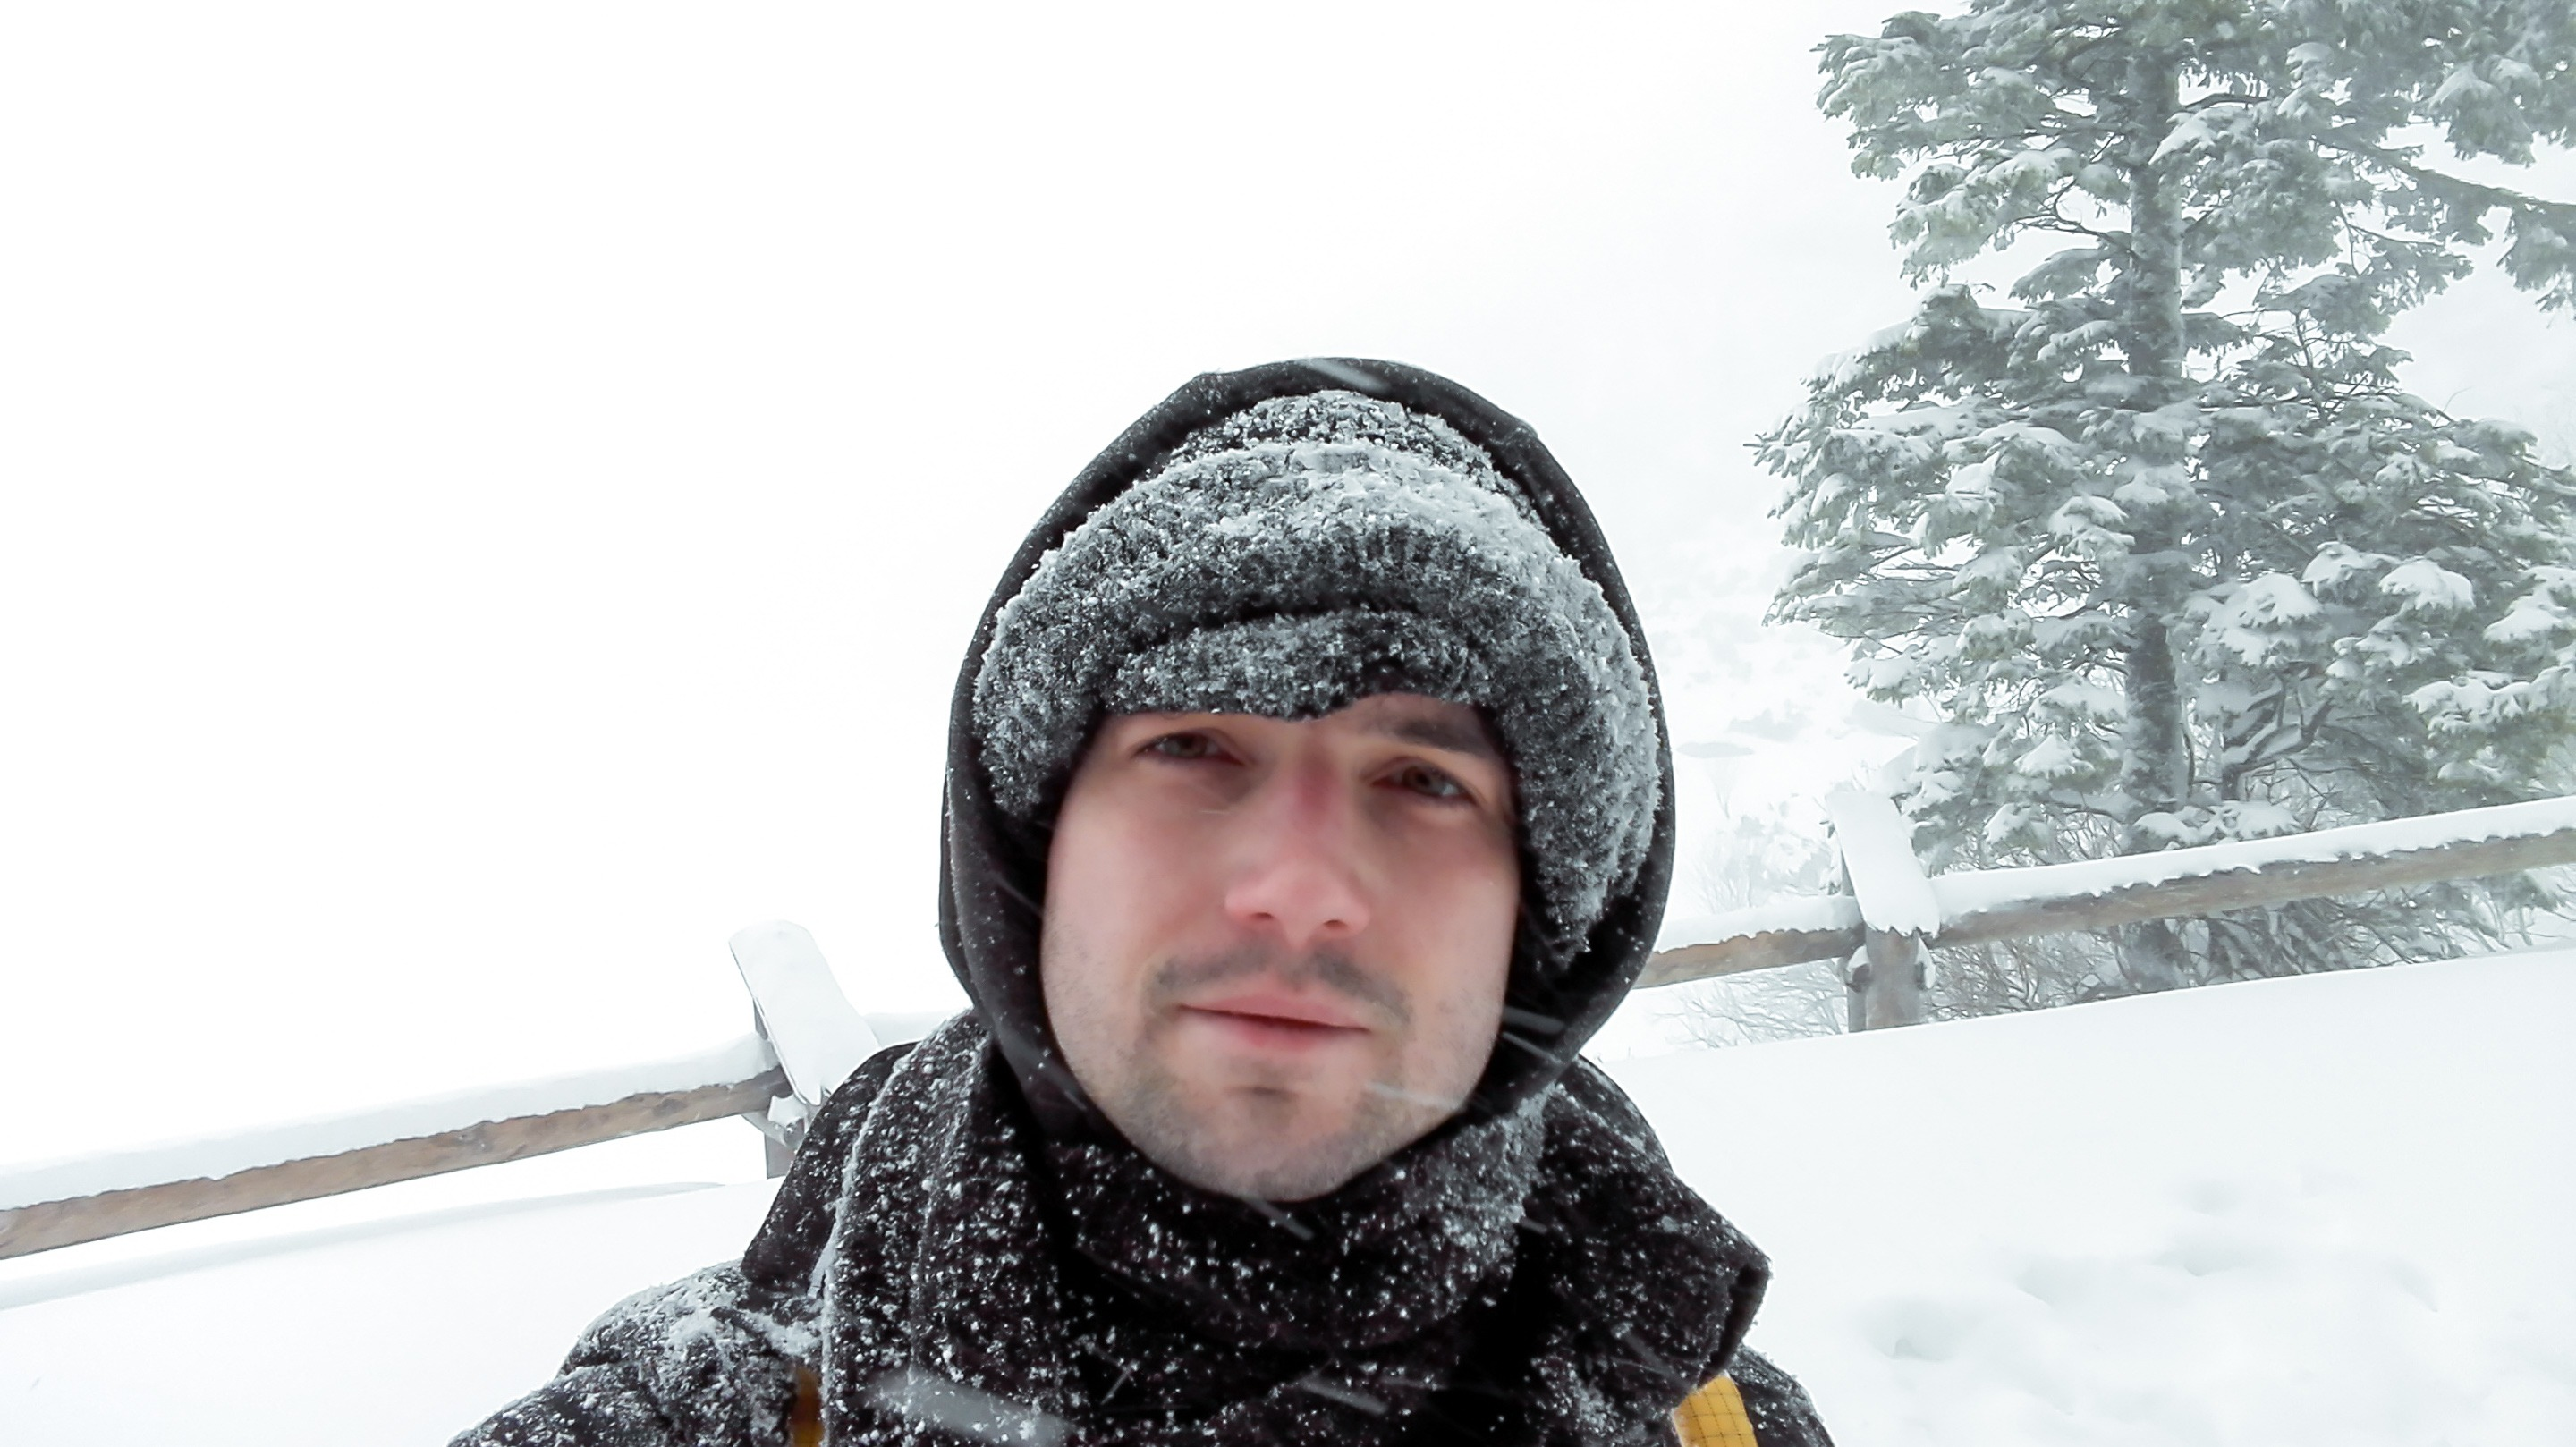 Well, I survided 8km walk in a blizzard. A selfie with Morskie oko in the background. Photo by Alis Monte [CC BY-SA 4.0], via Connecting the Dots